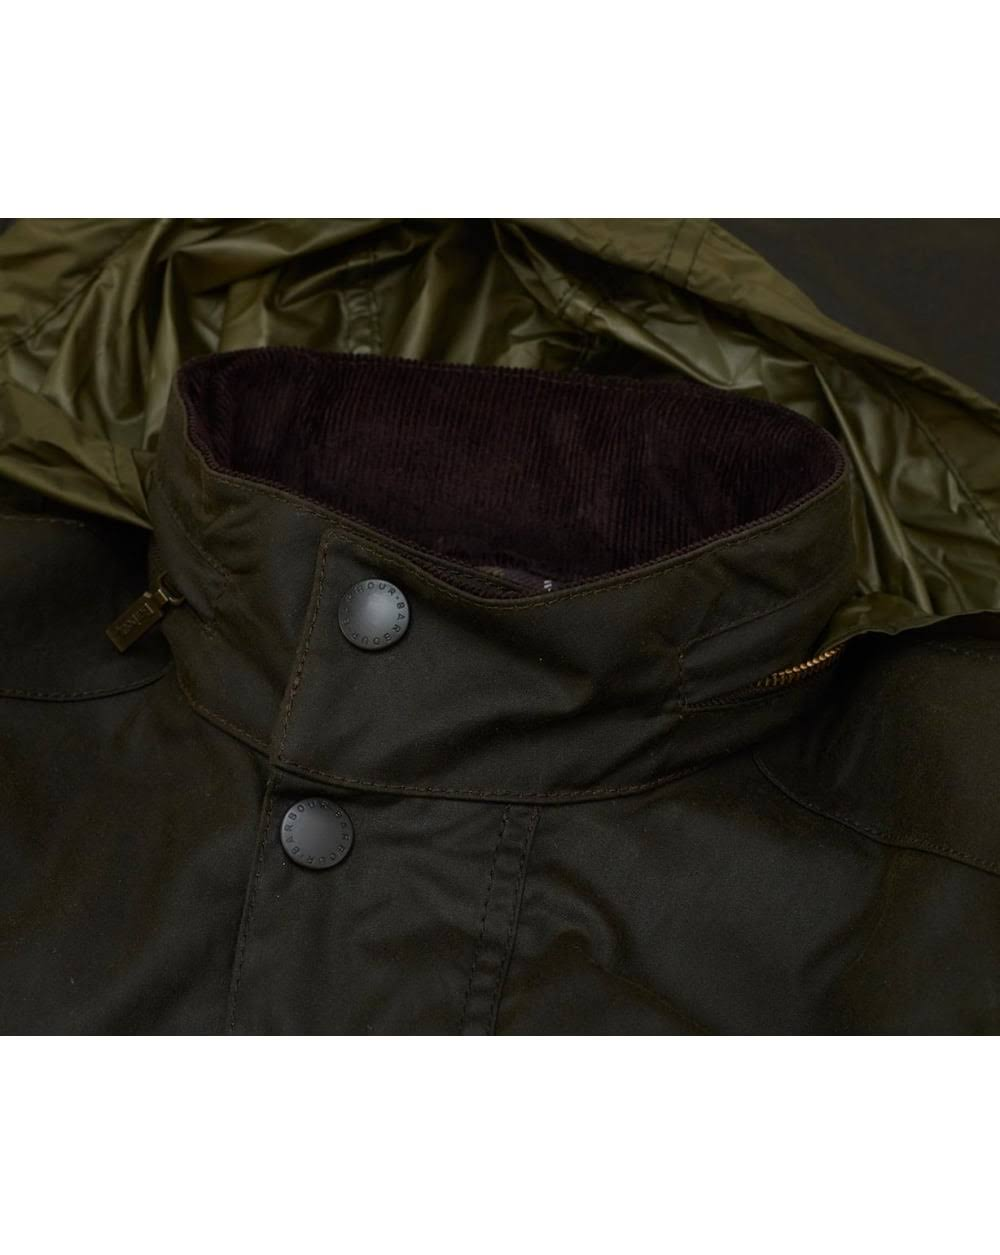 Barbour Wax Small Jacket Corbridge Olive Farbe Größe pwrqZ6pan